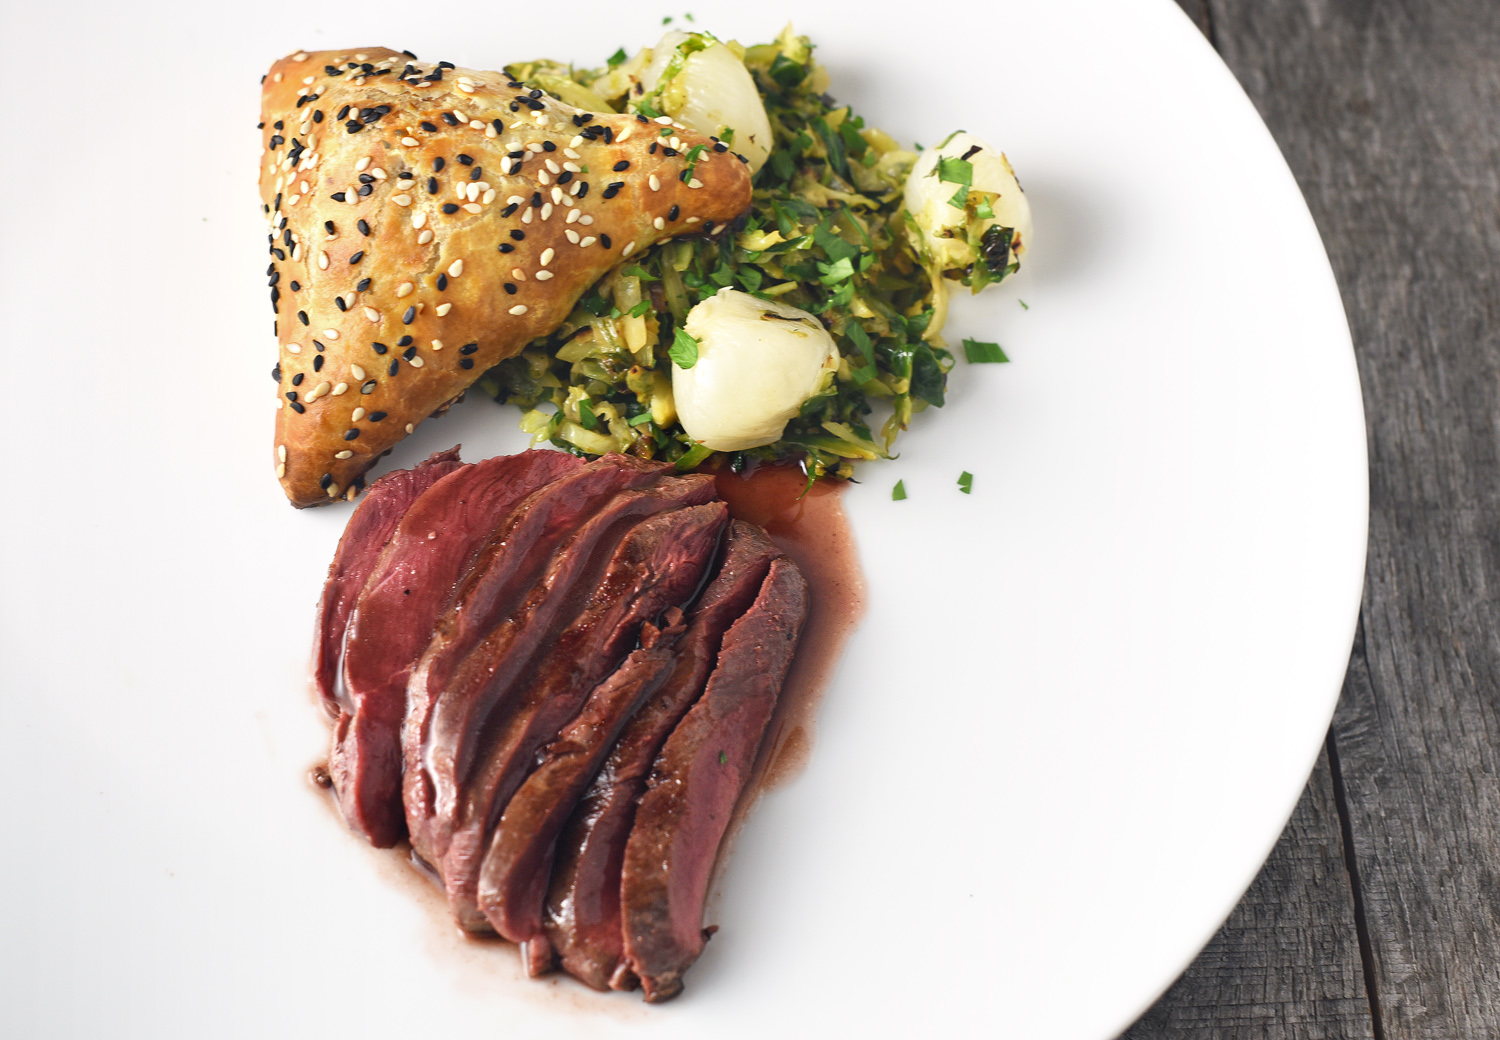 Czech Cuisine - Finger Lakes Duck, Plum Sauce and Brussels Sprouts